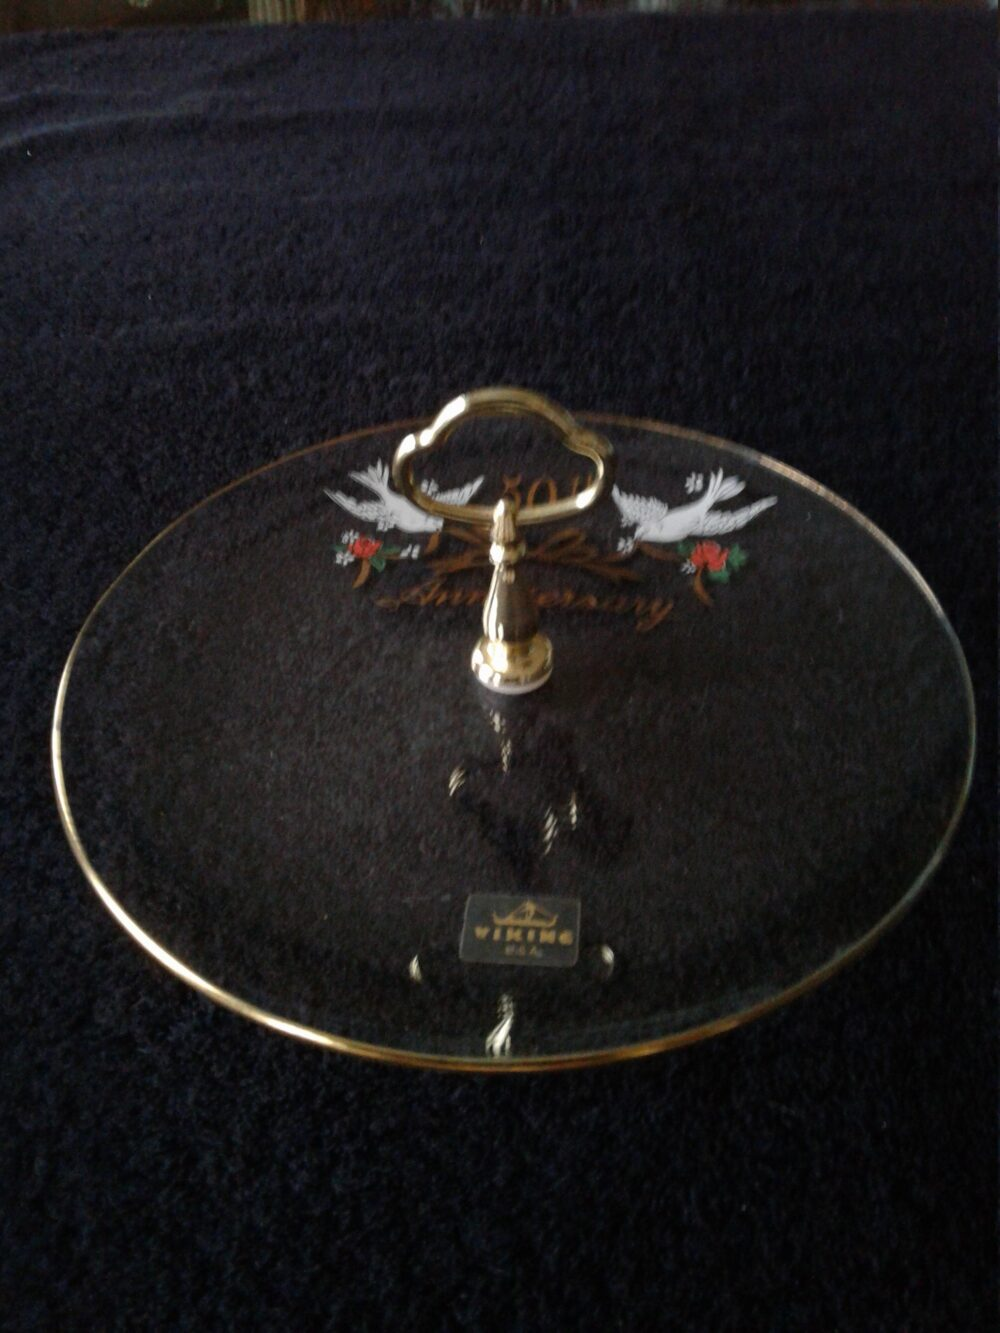 Vintage Viking 50Th Anniversary Serving Dish, Brass-Tone Handle, Love Doves & Roses, Made in Usa, Excellent Condition